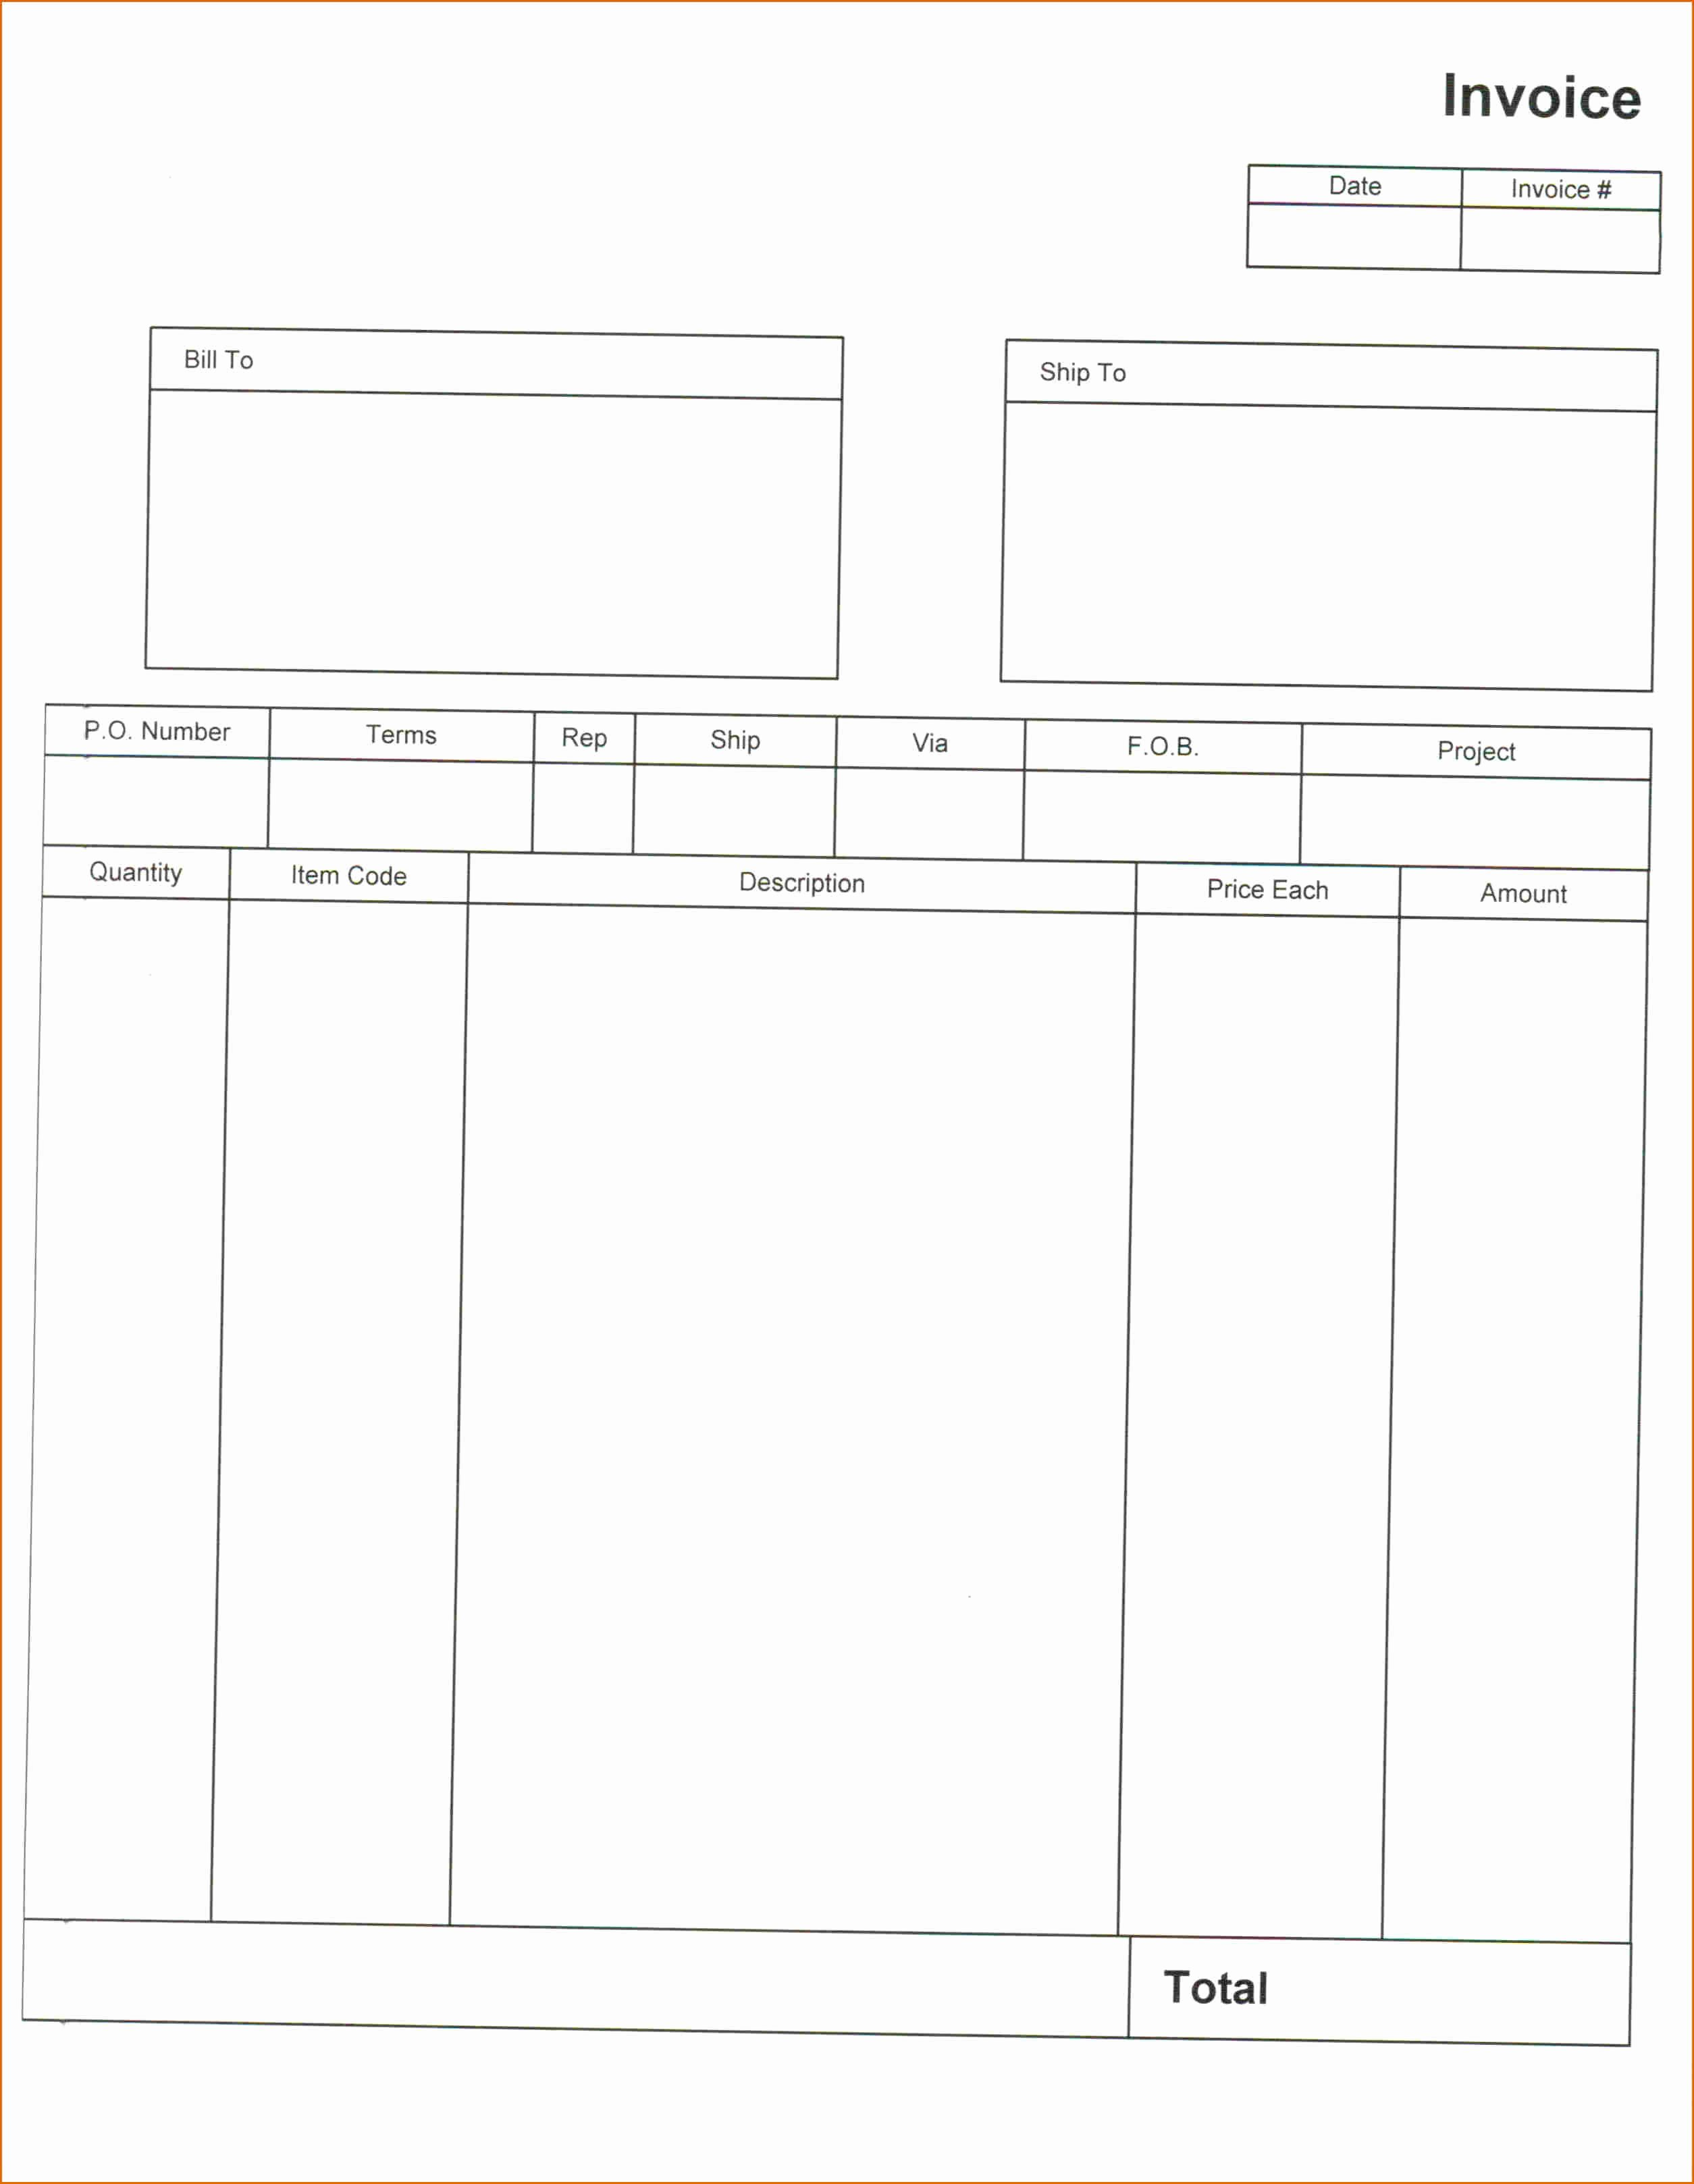 Blank Invoice Template Pdf Beautiful 8 Blank Invoice Template Pdf